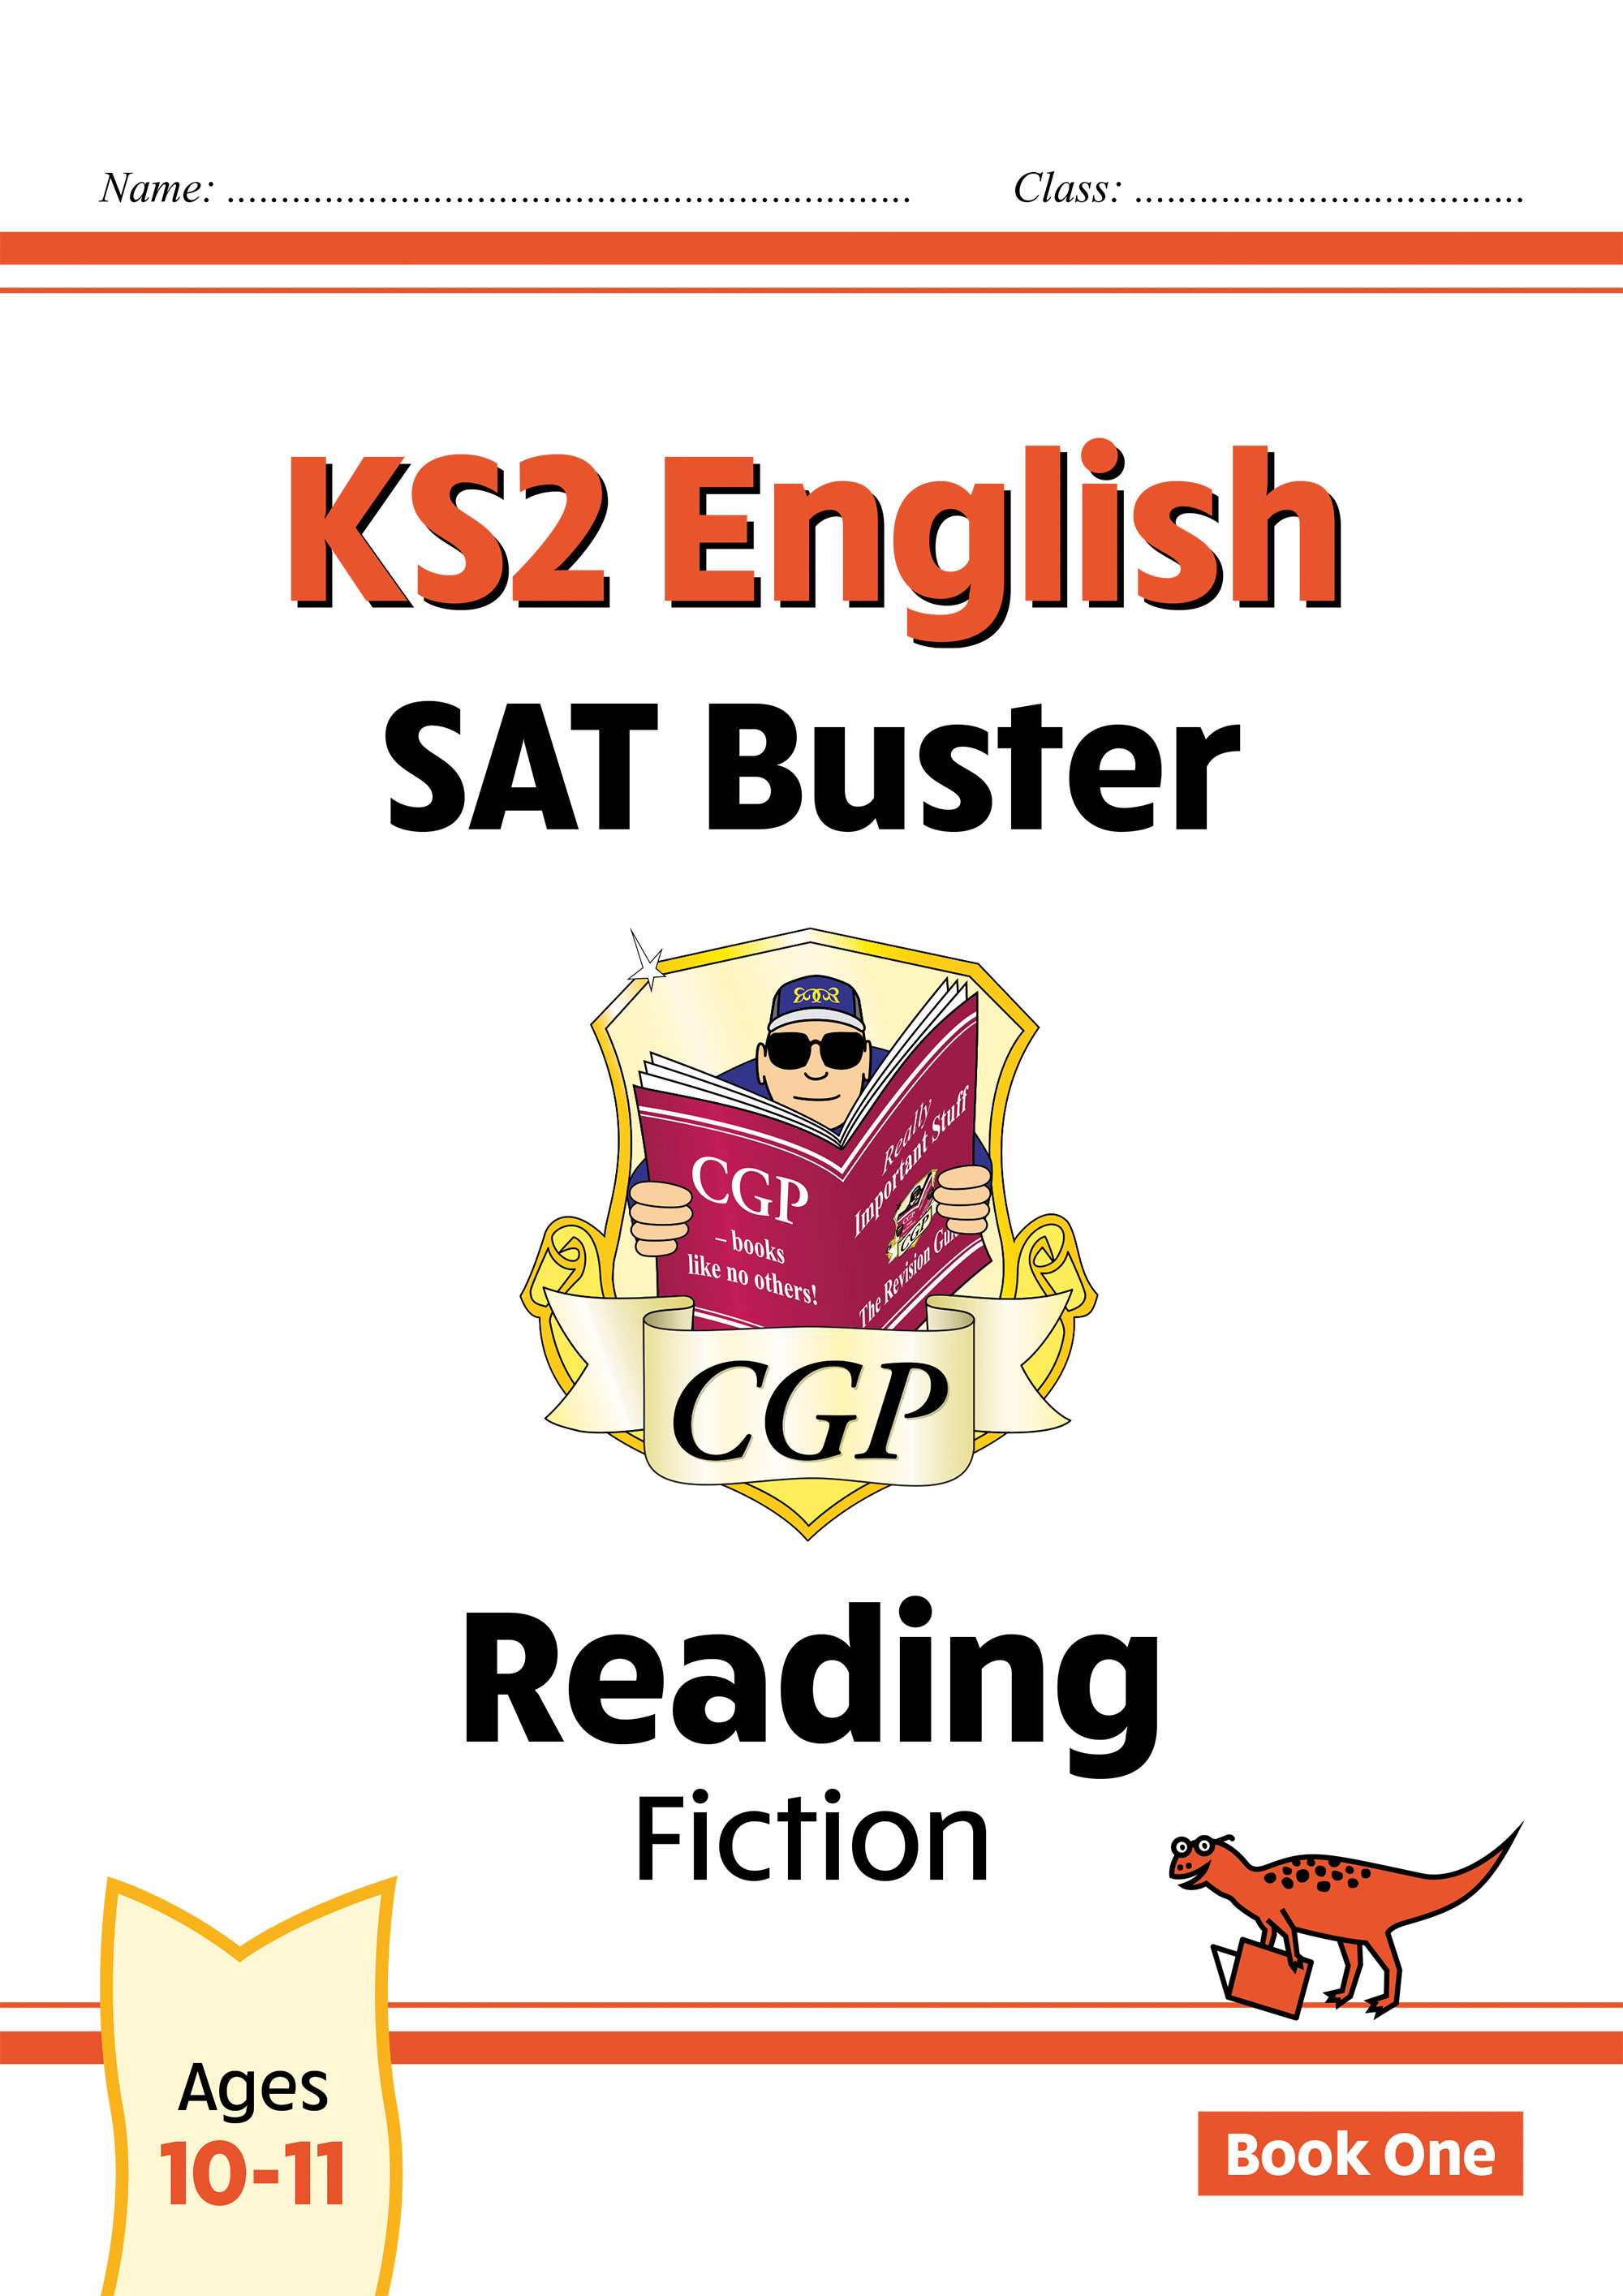 E6FRF22DK - New KS2 English Reading SAT Buster: Fiction - Book 1 (for the 2021 tests)